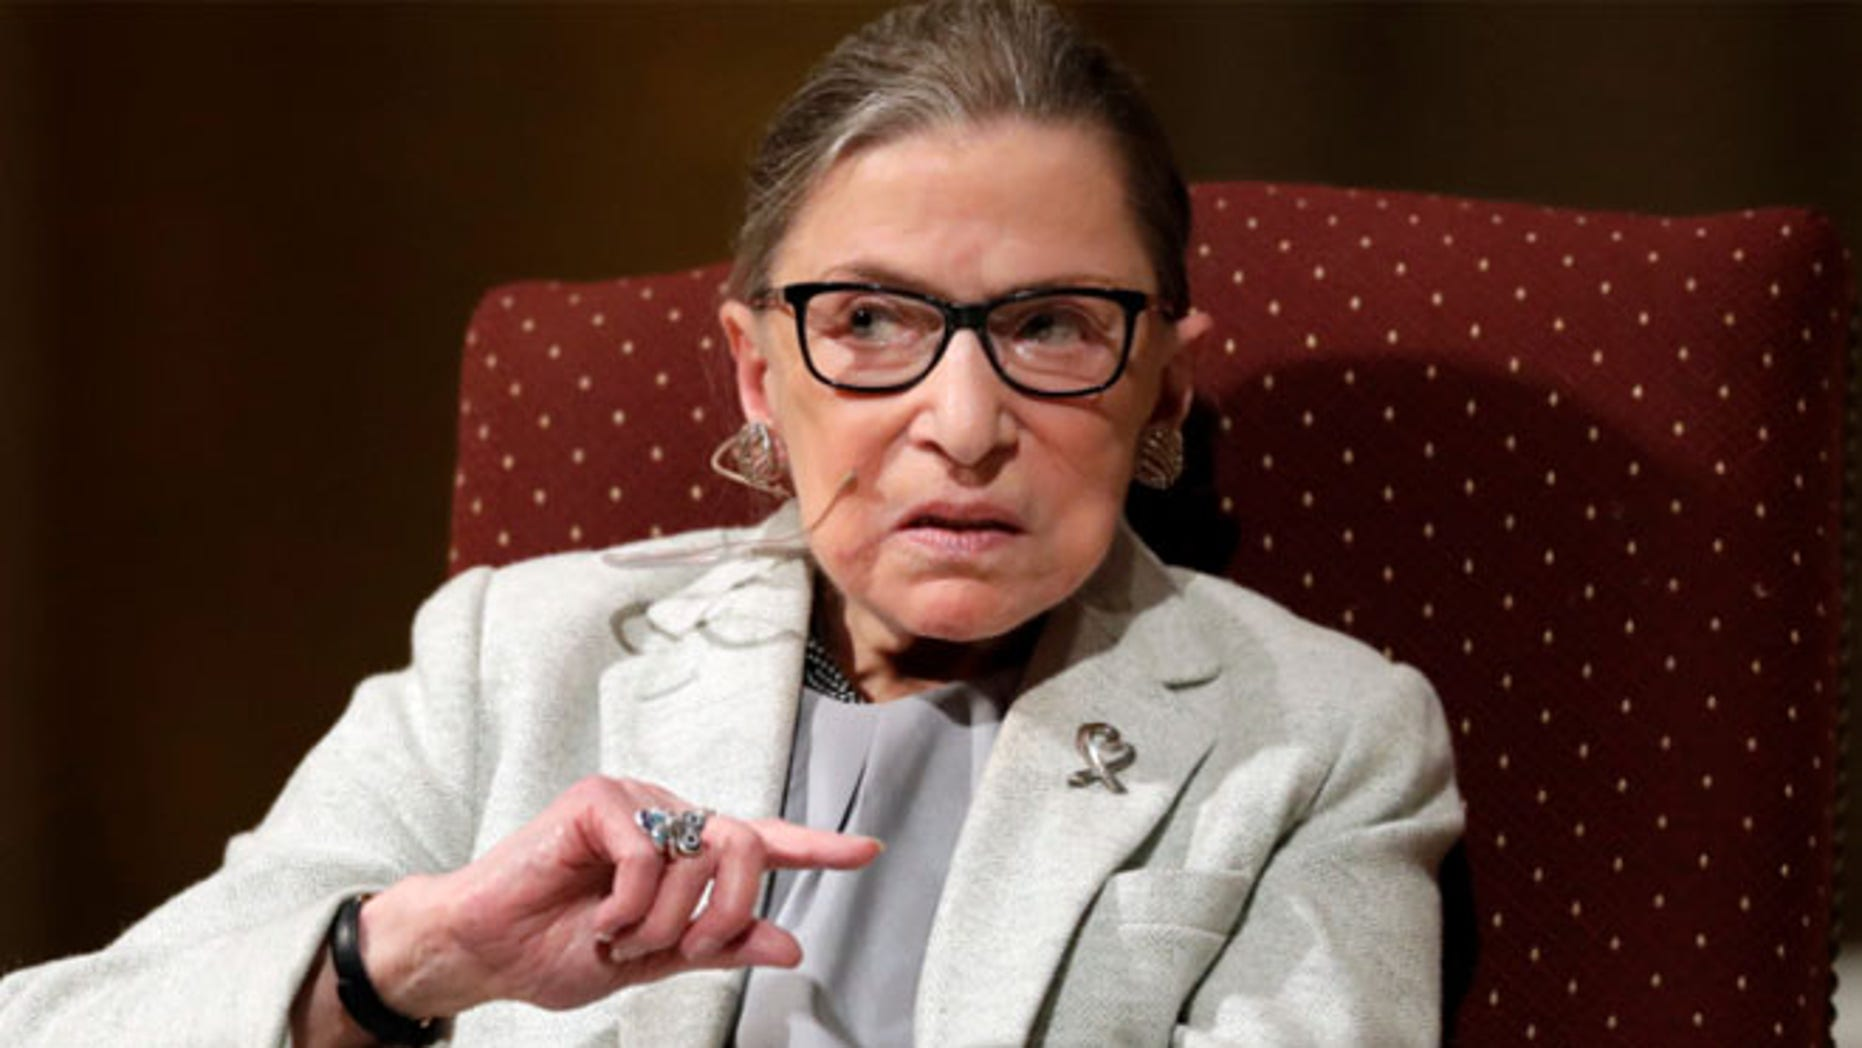 U.S. Supreme Court Justice Ruth Bader Ginsburg speaks during a visit to Stanford University